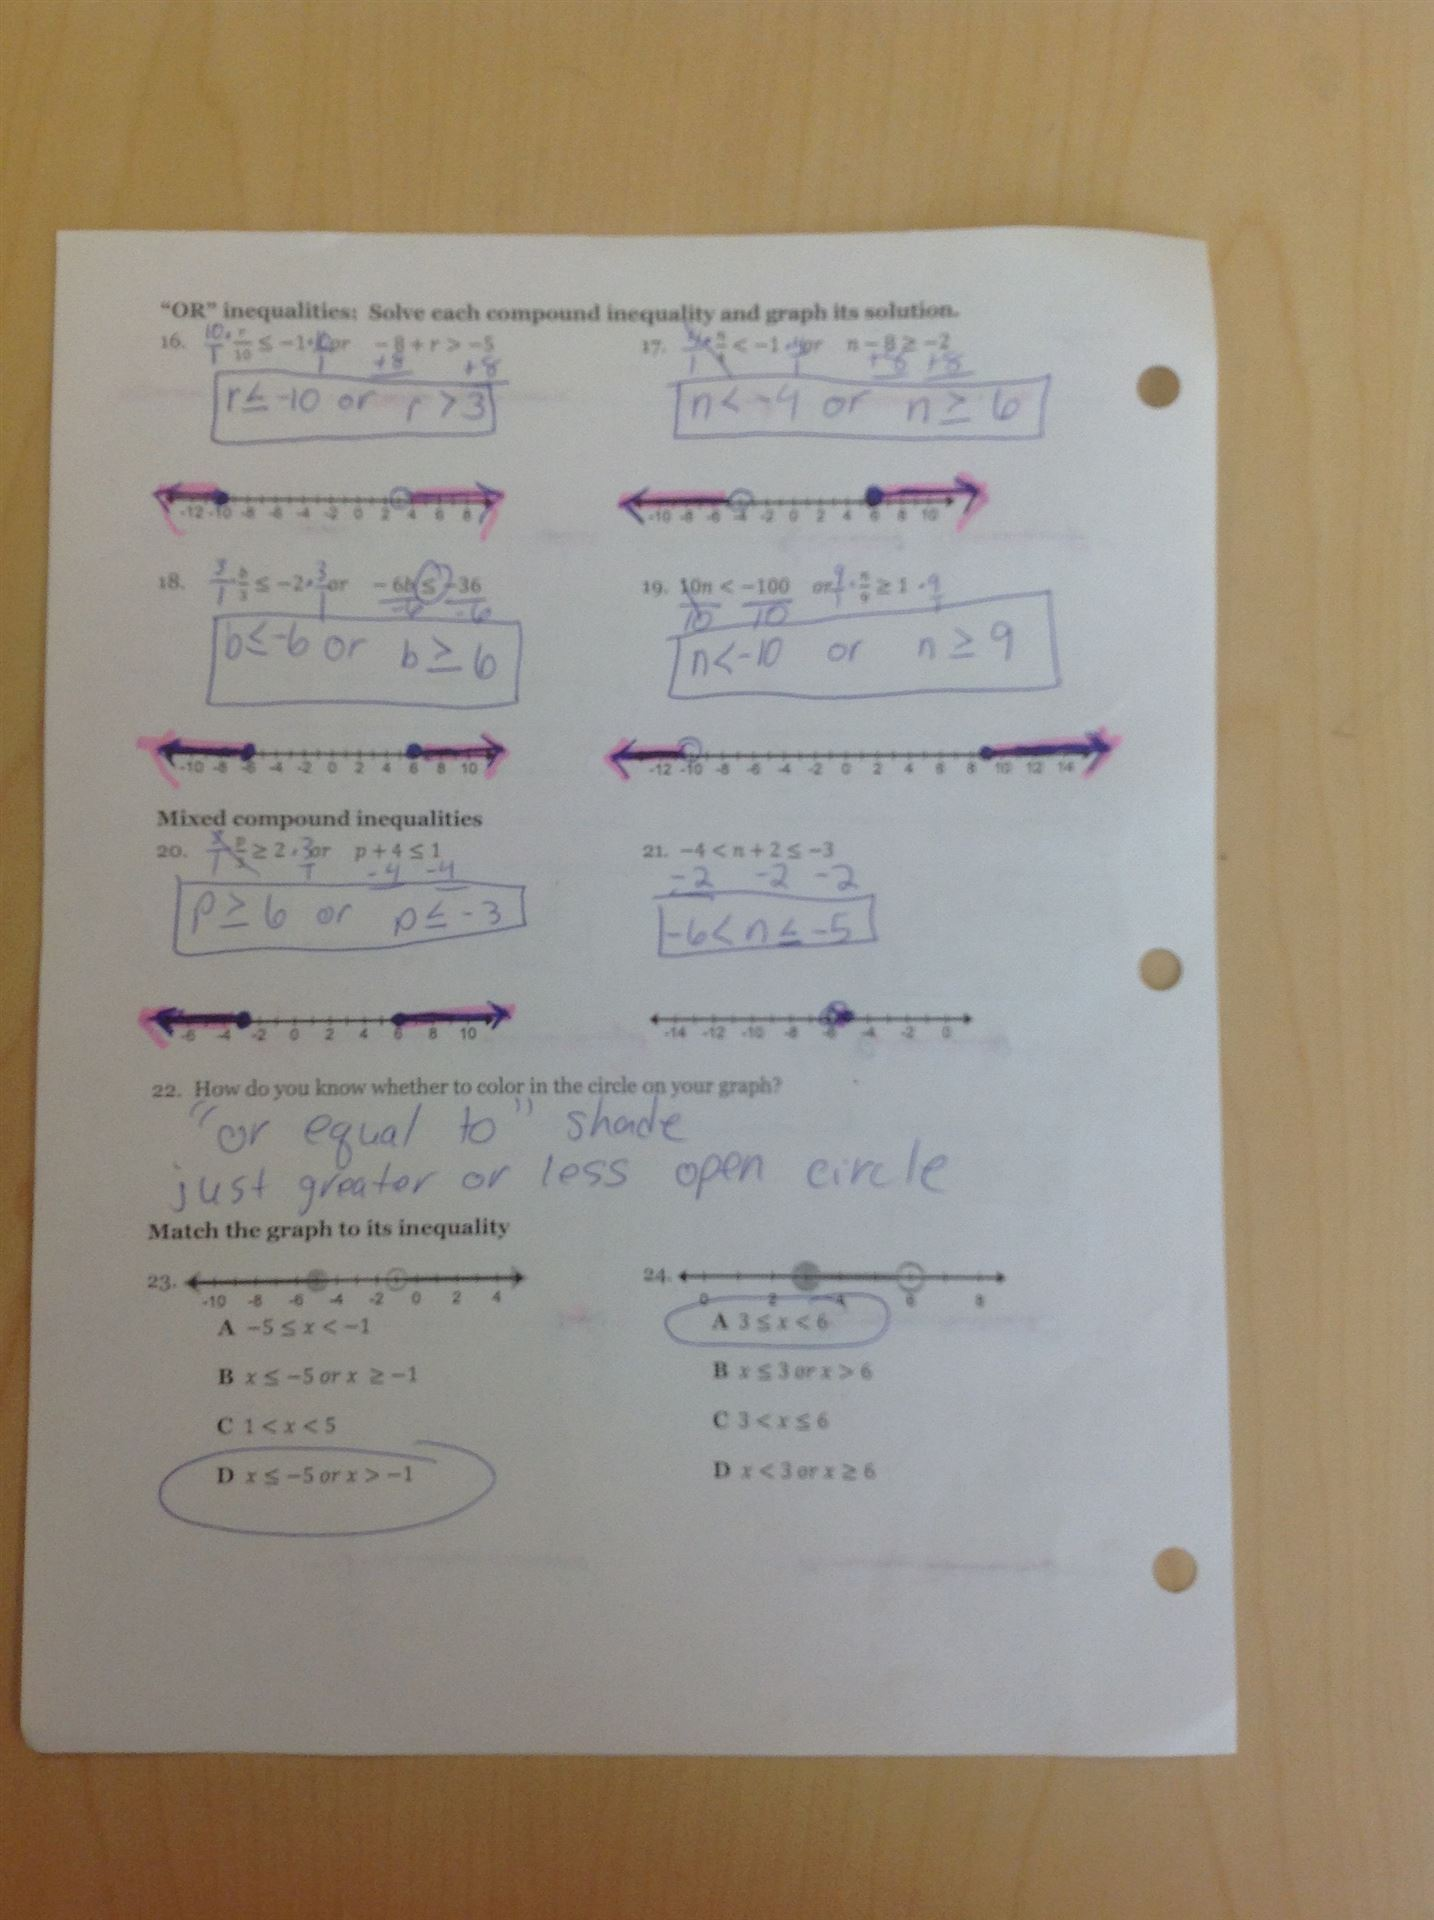 Graphing Compound Inequalities Worksheet With Answers - Kidz Activities